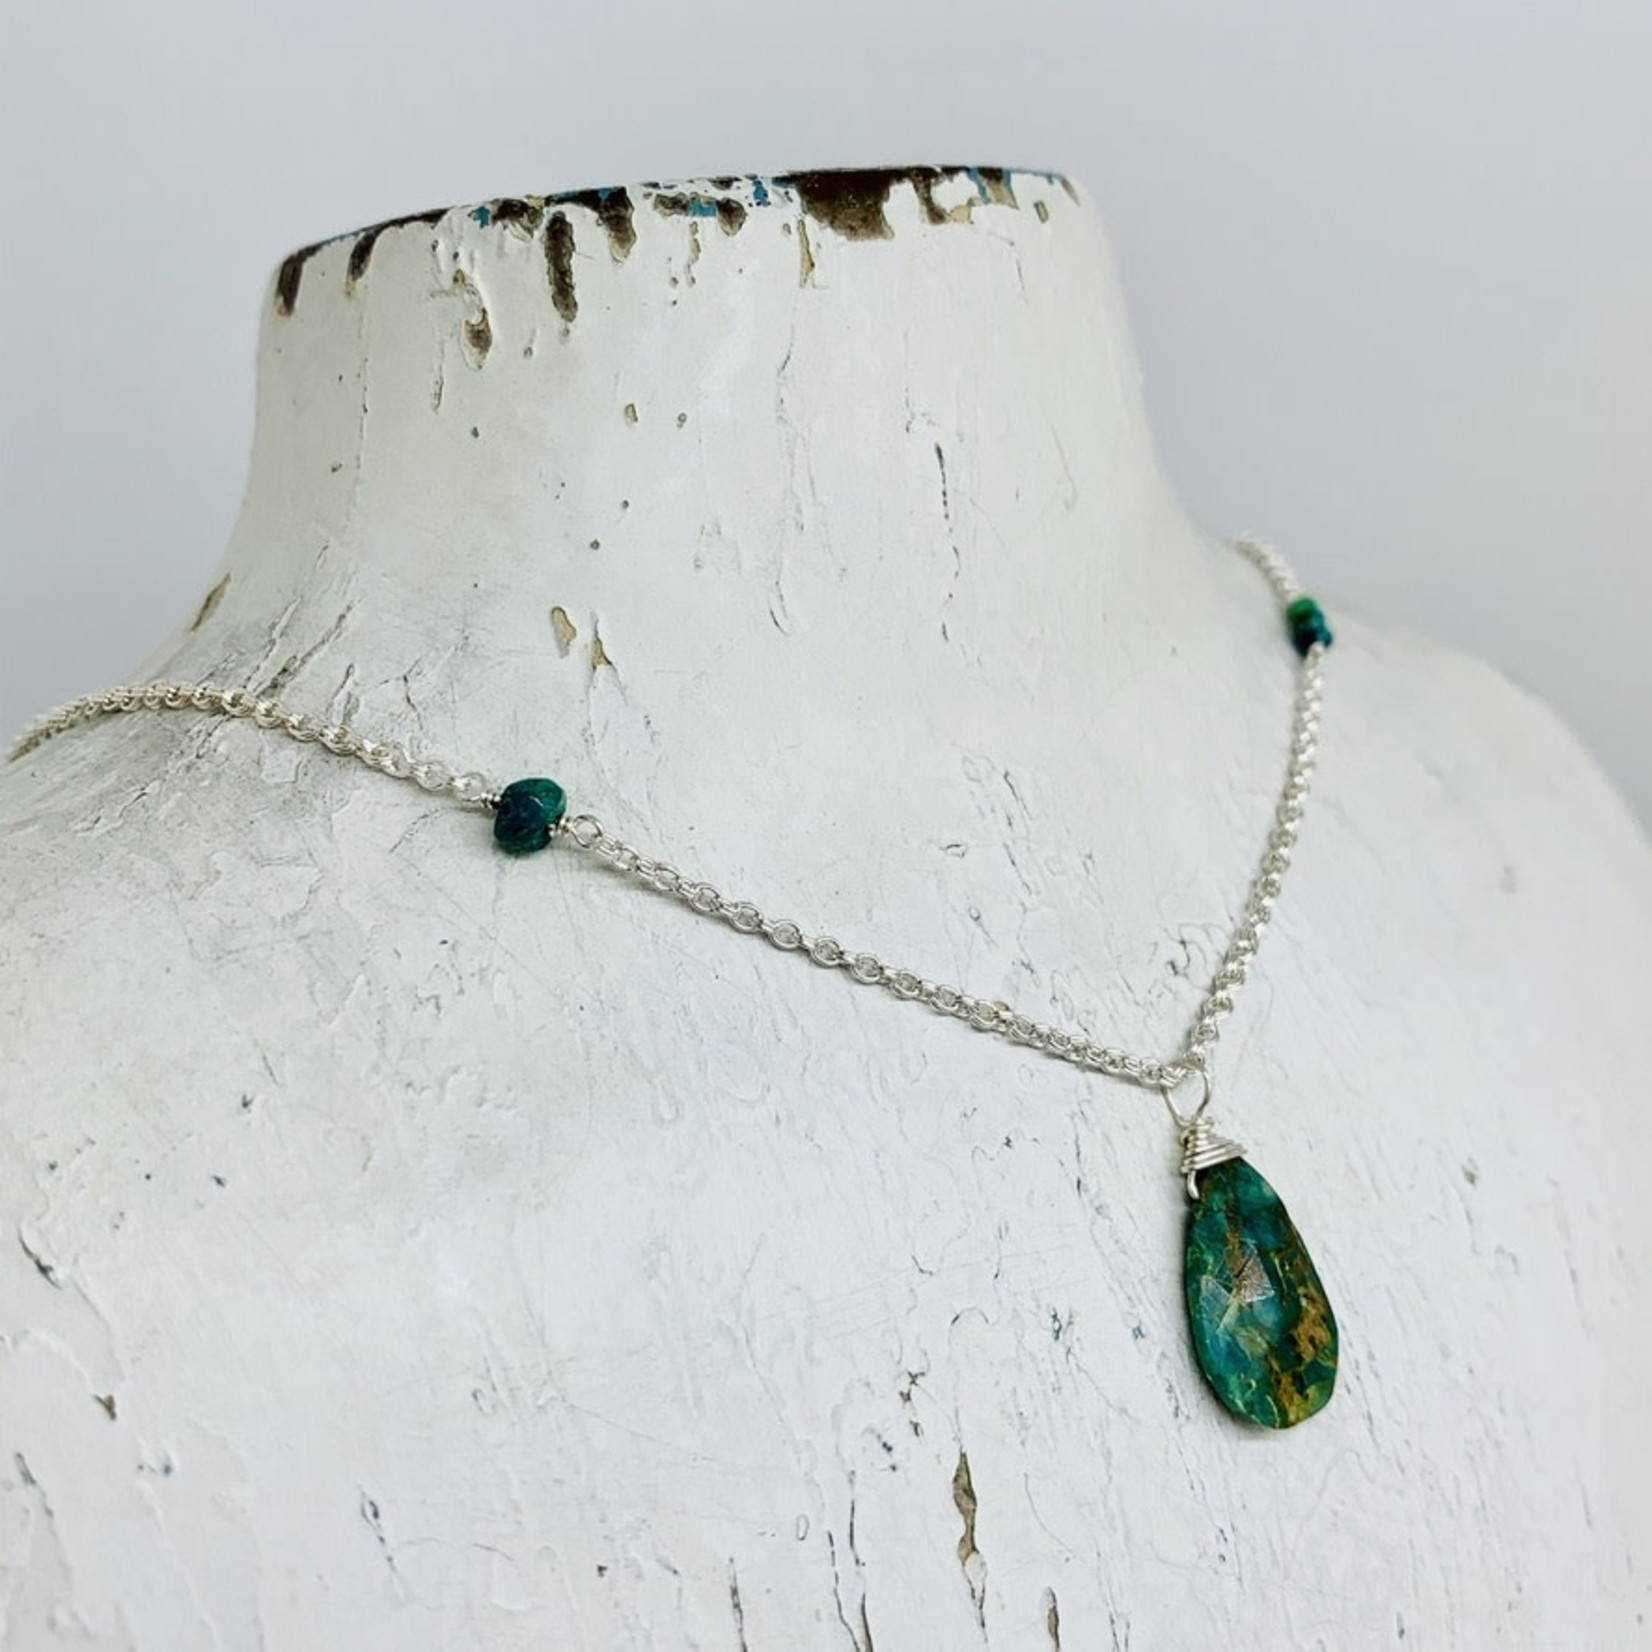 Handmade necklace with chrysocolla, stack 3 chrysocolla